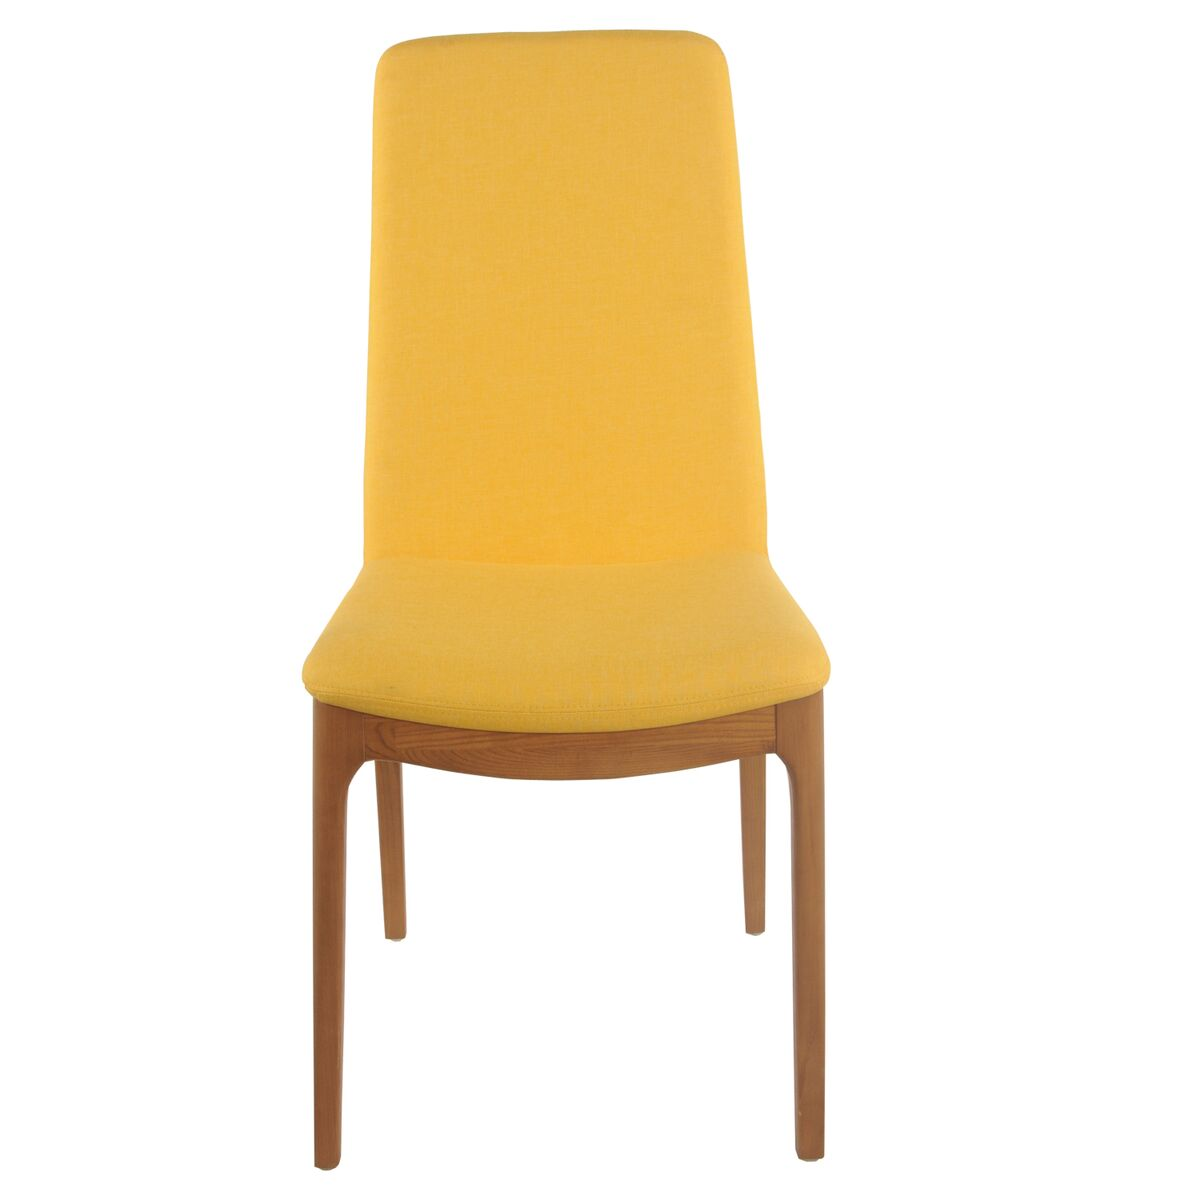 Fabric Guest or Conference Chair in Bright Yellow (Set of 2)